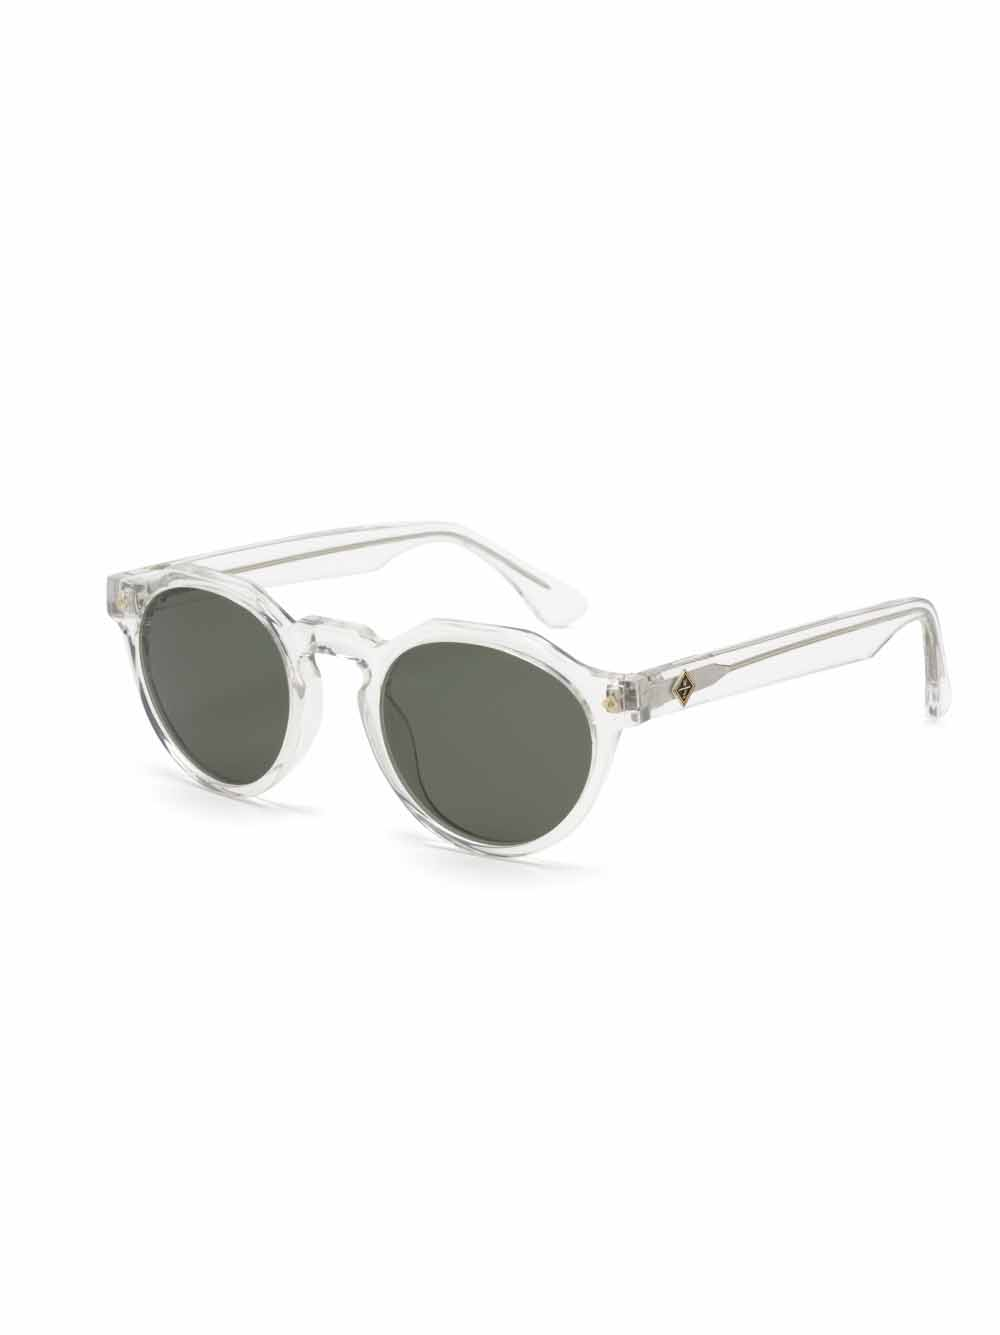 WONDERLAND, SUNGLASSES, FONTANA CLEAR, WL25-2-26